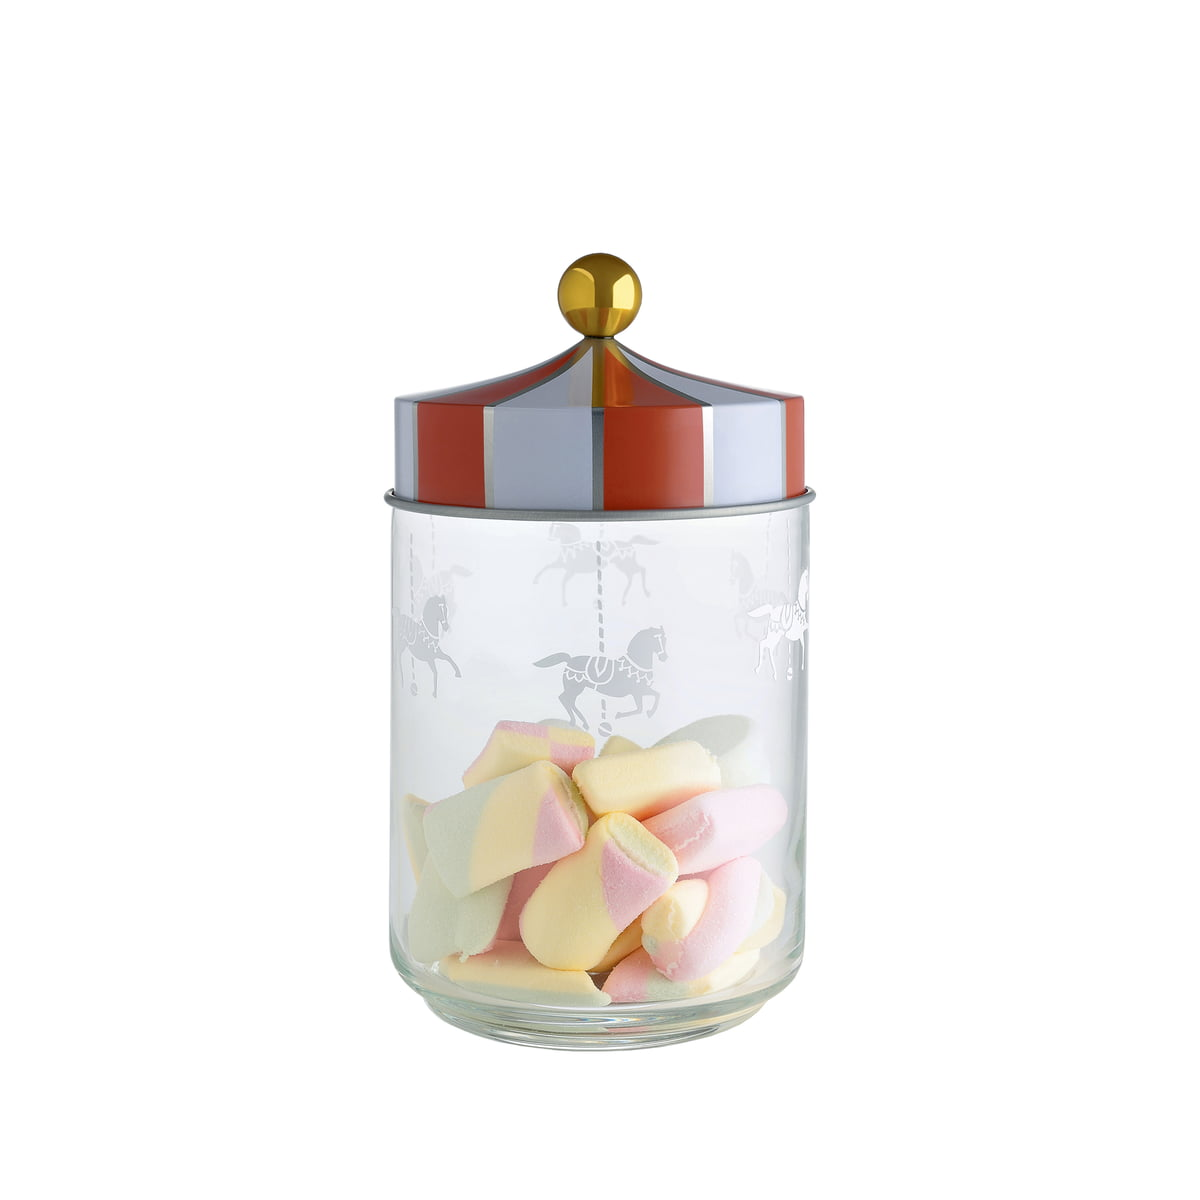 Circus Storage Jar by Alessi in the shop